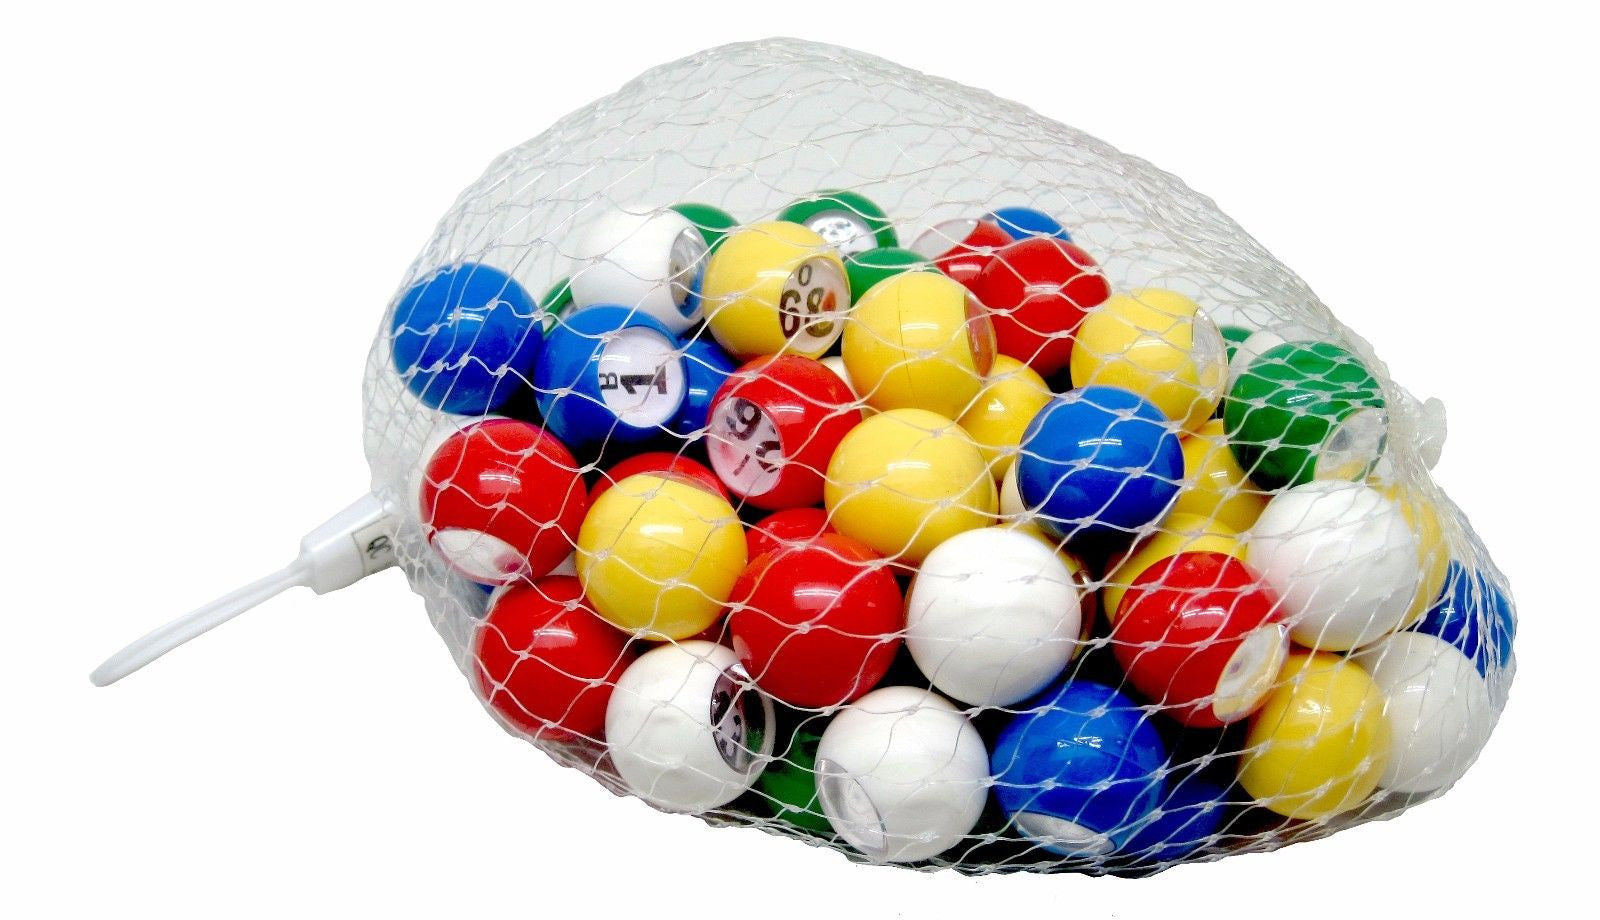 Bingo Balls - Large and Small - Spinettis Gaming - 1